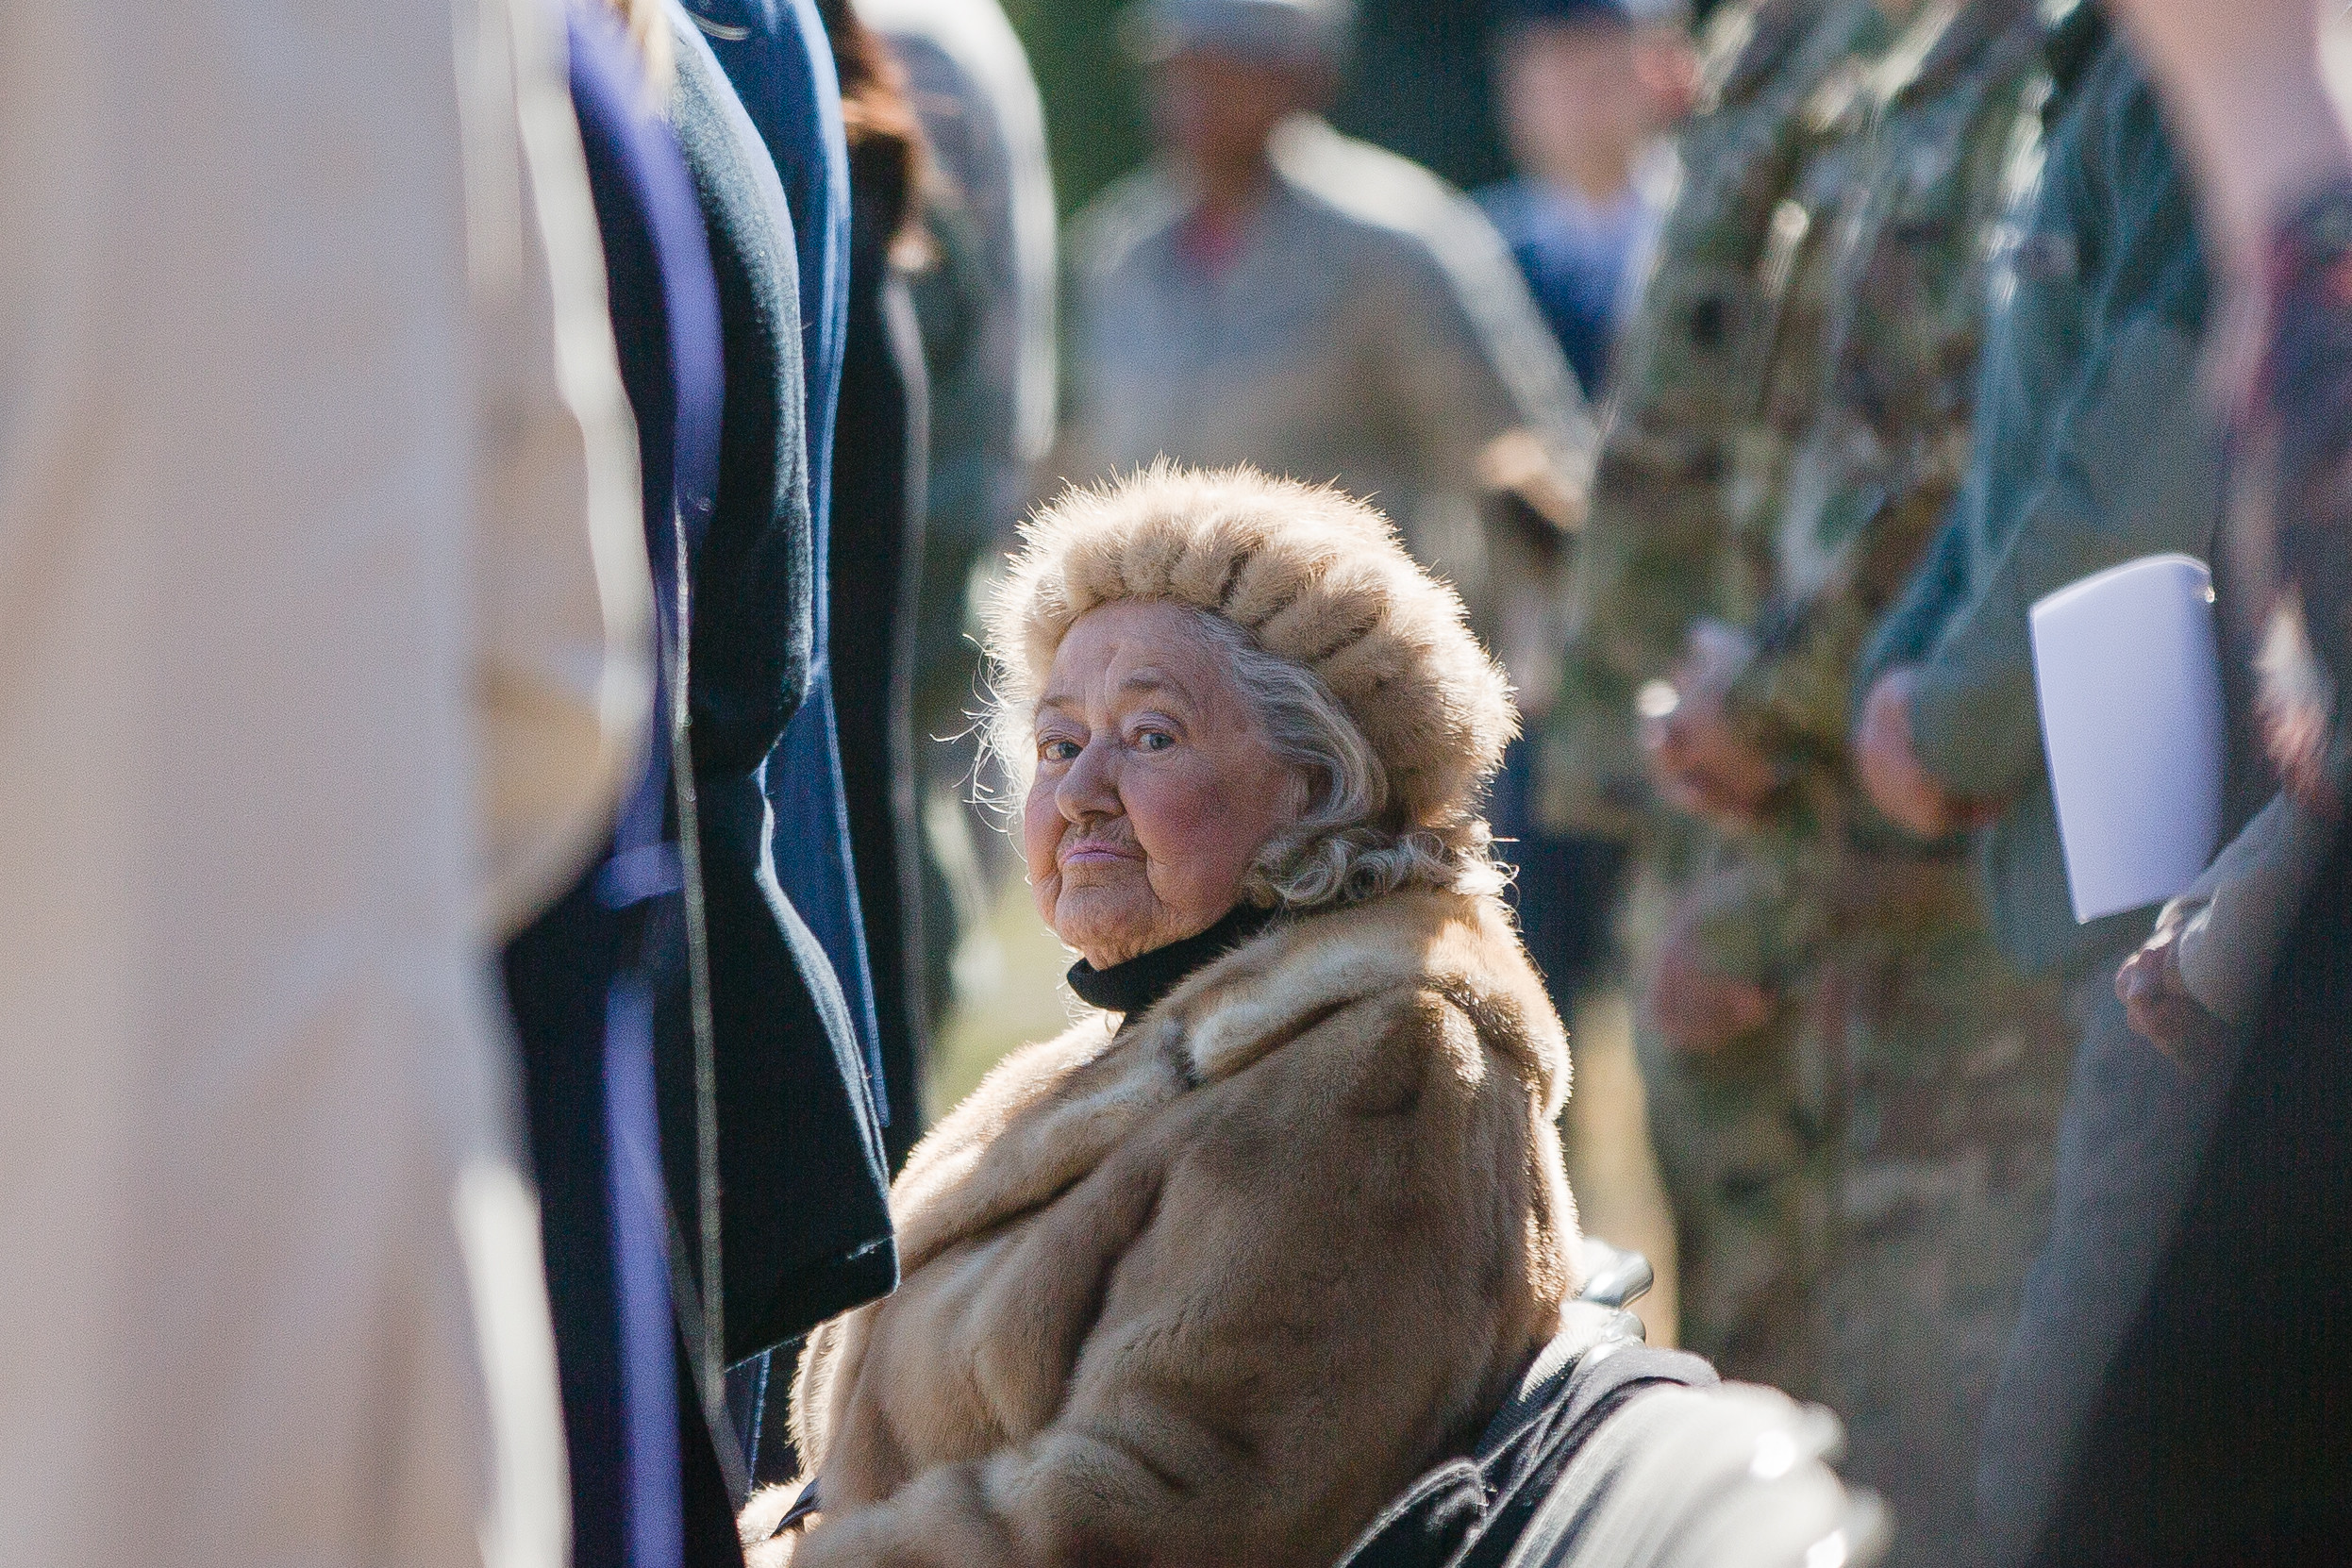 Jacqueline Heckel, the widow of Lt. Charles Heckel, attended the ceremony in her husband's honor at Shaw Air Force Base last week.